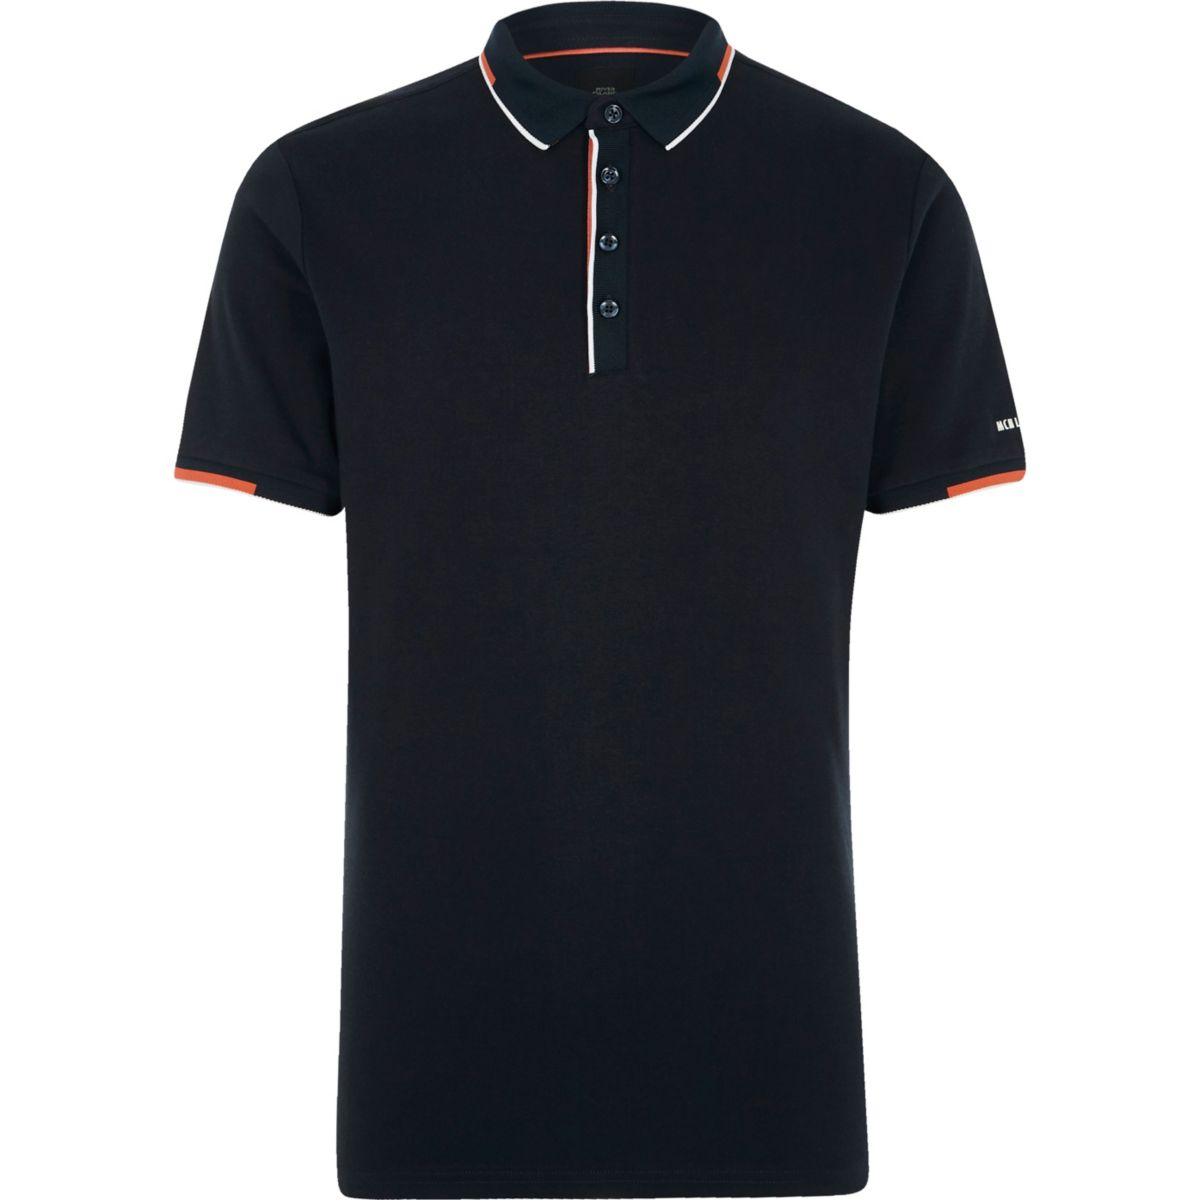 navy tipped short sleeve slim fit polo shirt polo shirts. Black Bedroom Furniture Sets. Home Design Ideas